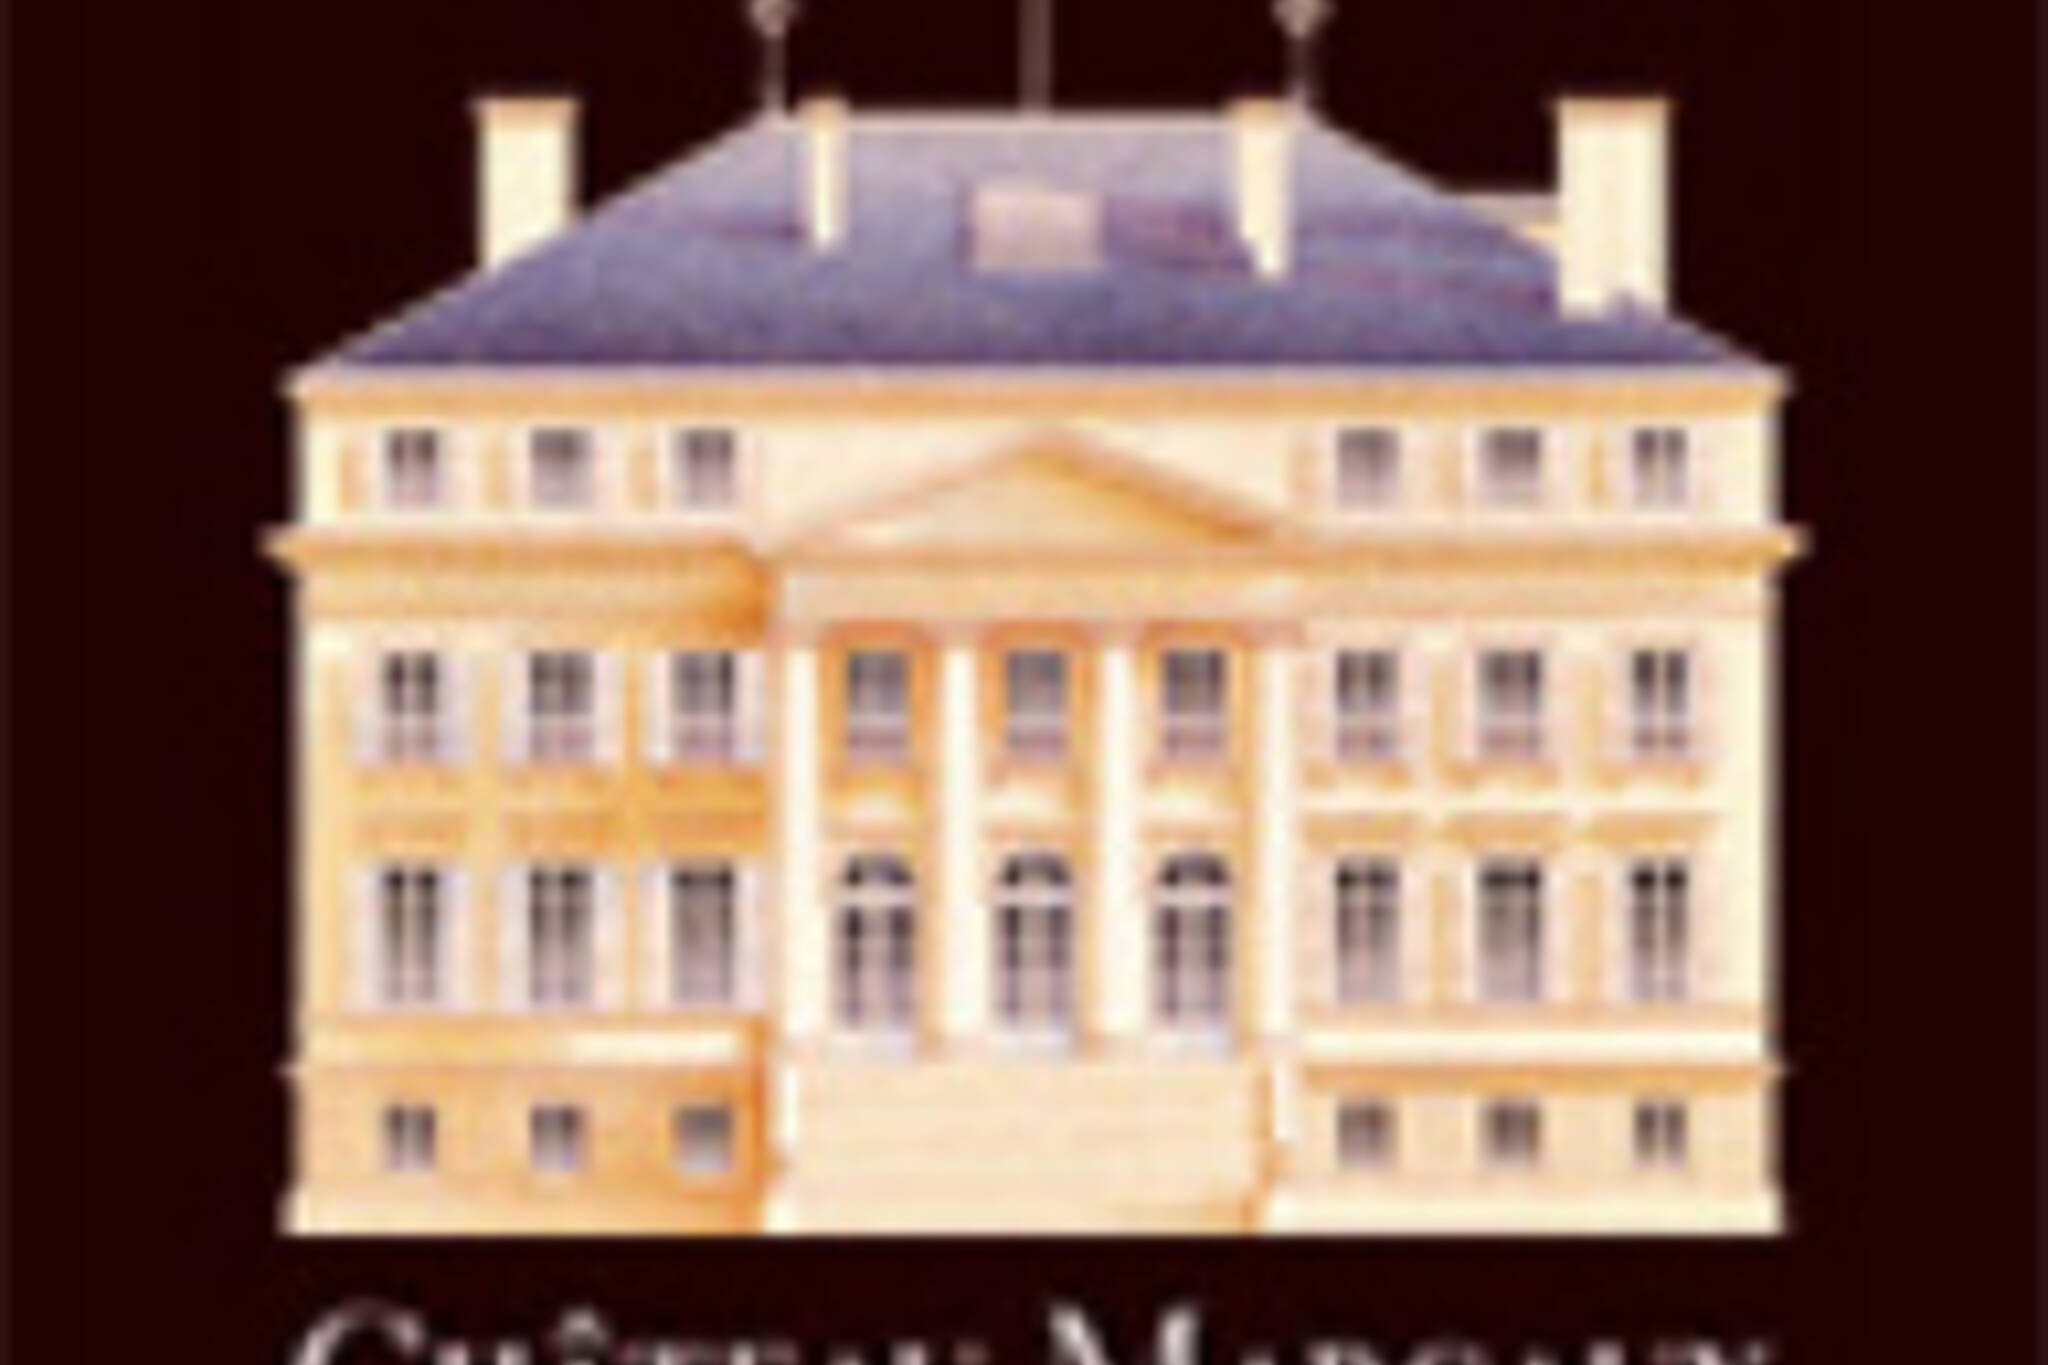 The Chateau that the wine (and a friend of mine) are named after.  Image from www.chateaumargaux.com